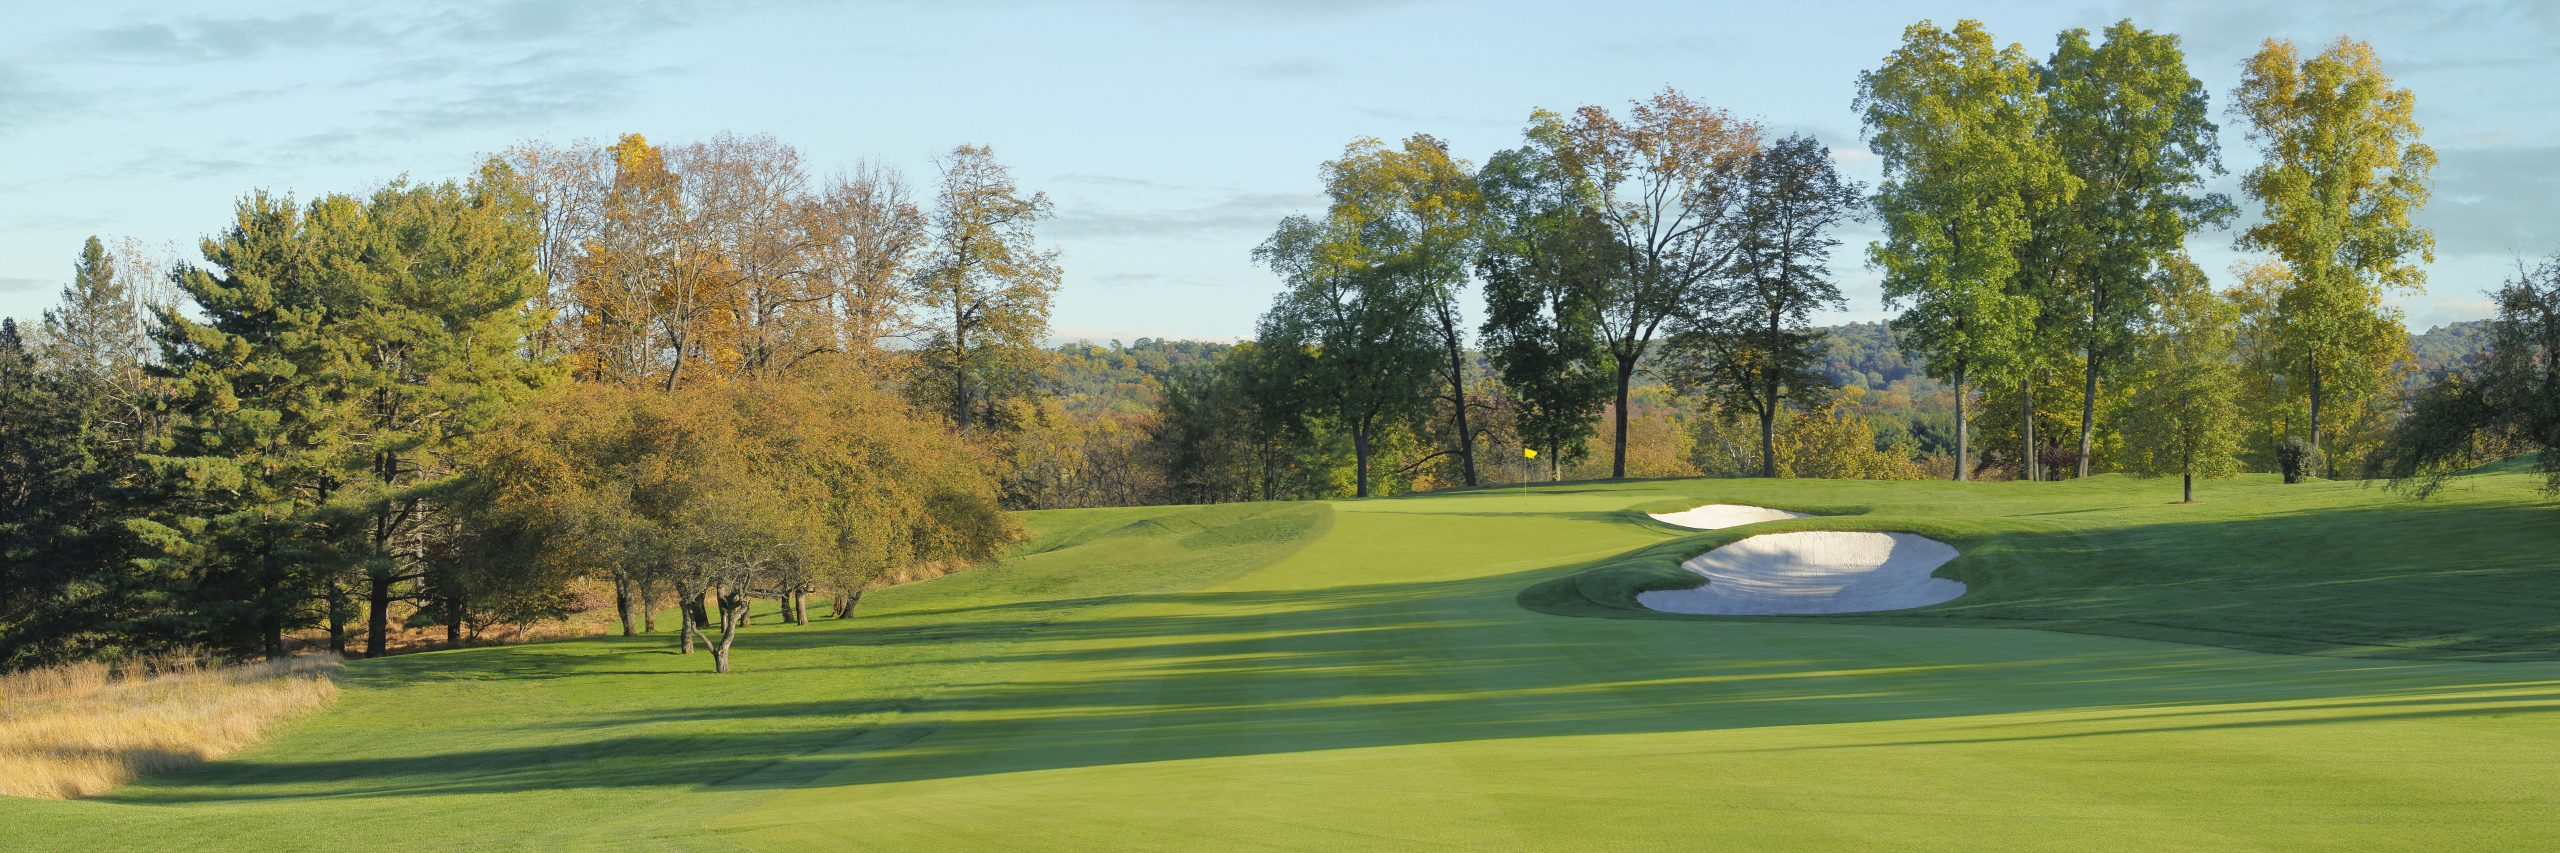 Golf Course Image - Saucon Valley Weyhill No. 13